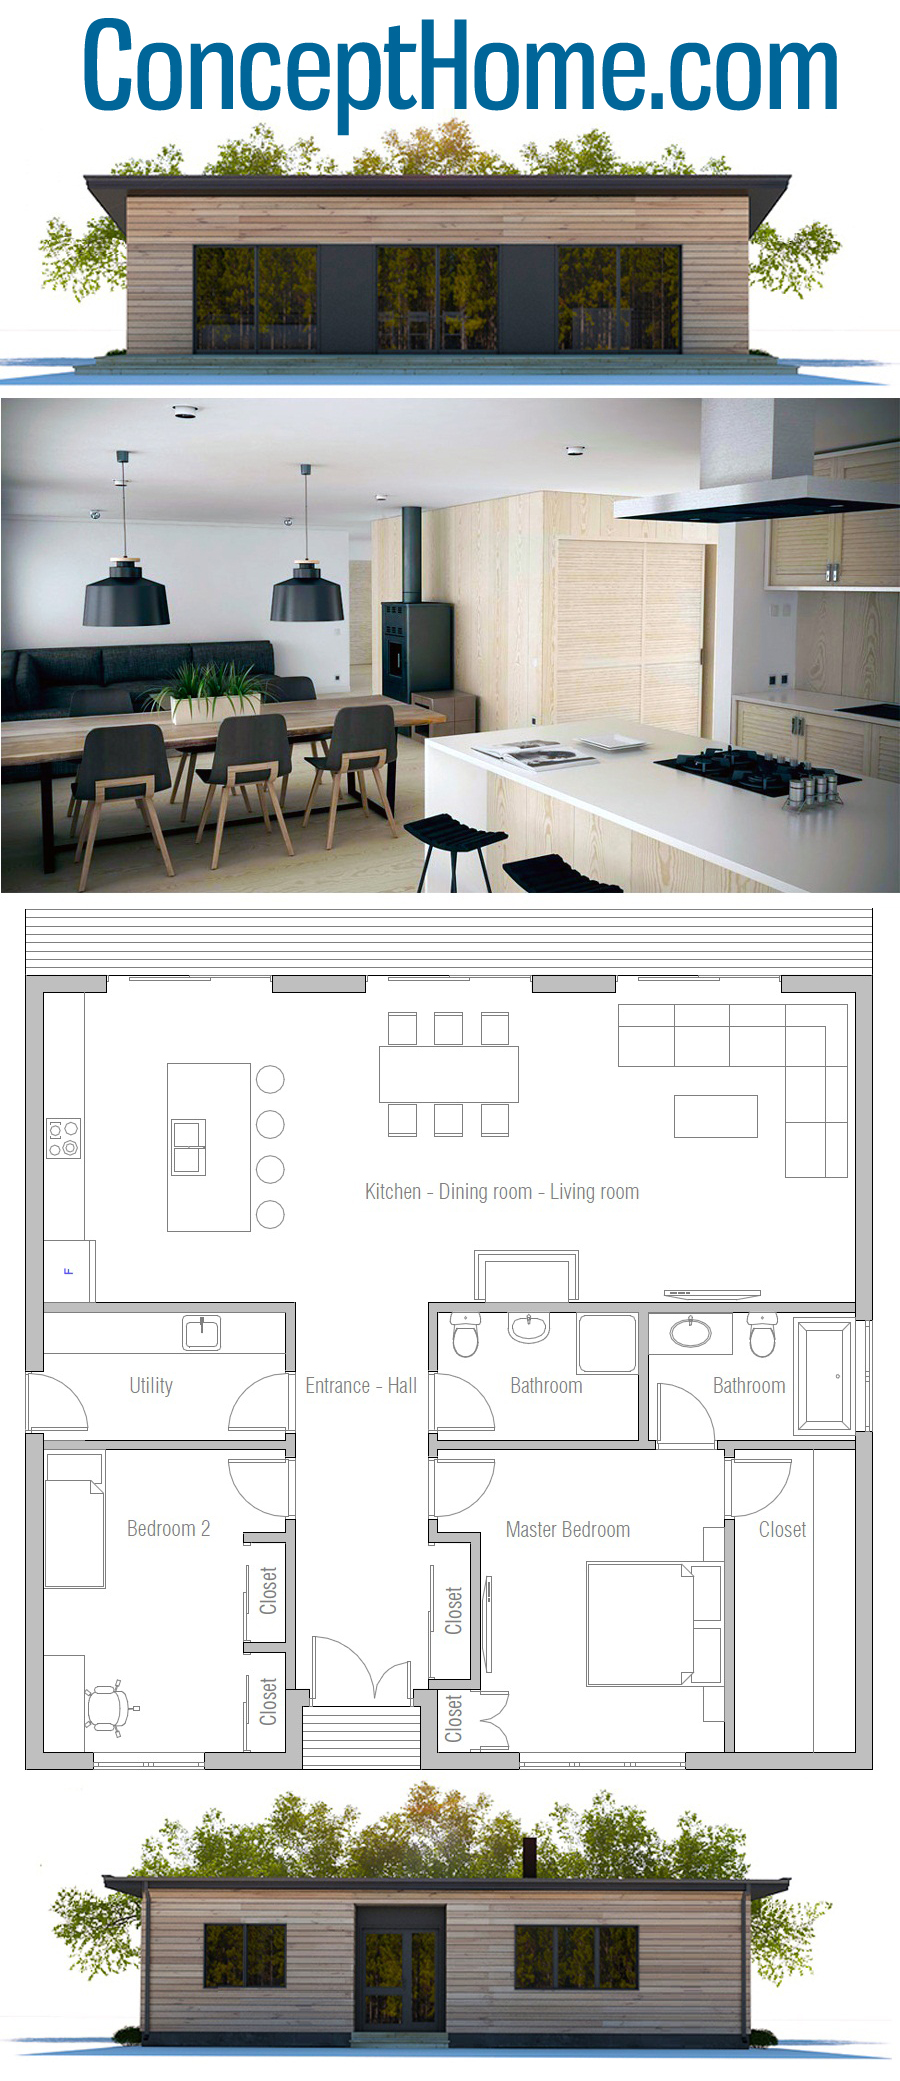 Home Plan Ch432 Courtyard House Plans Bedroom House Plans Two Bedroom House